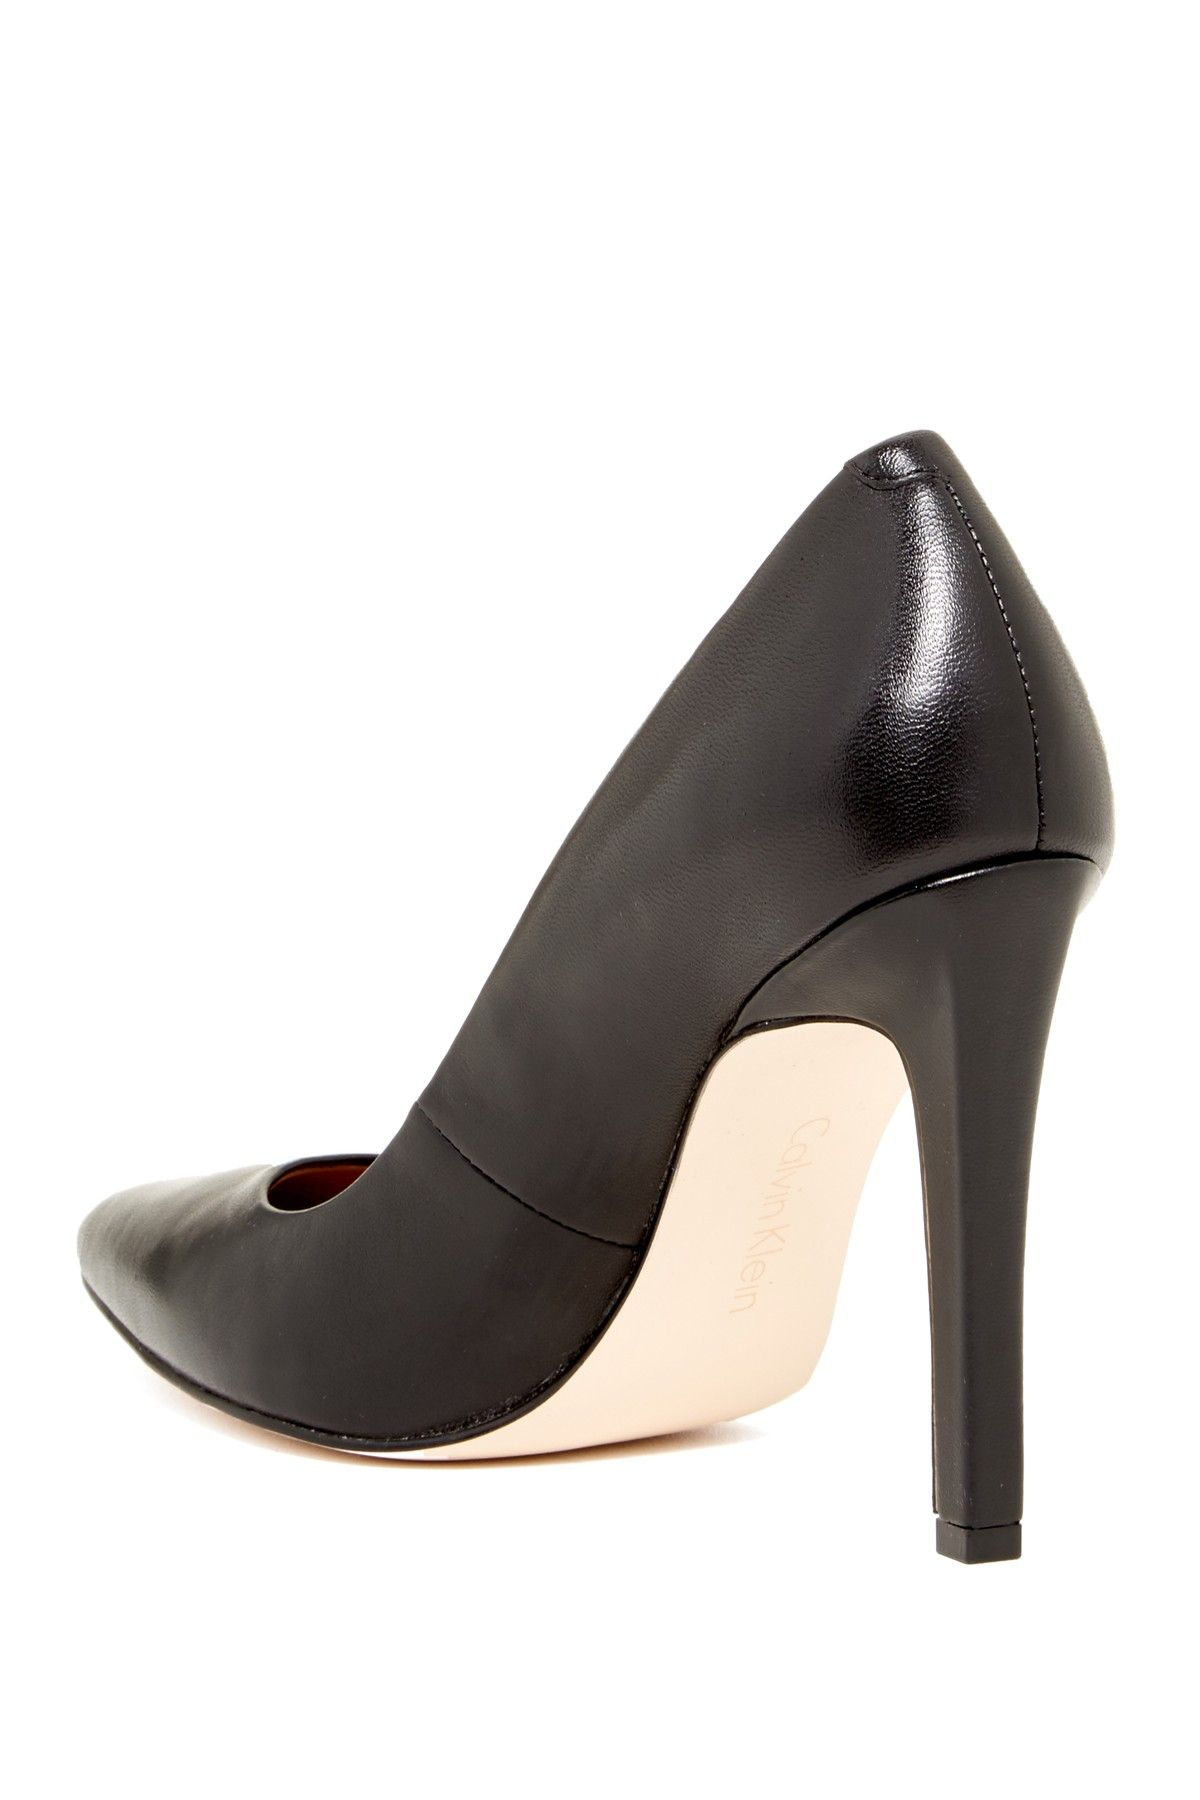 7b4c129a2ef Brady Leather Pointed Toe Pump - Wide Width Available by Calvin Klein on   nordstrom rack